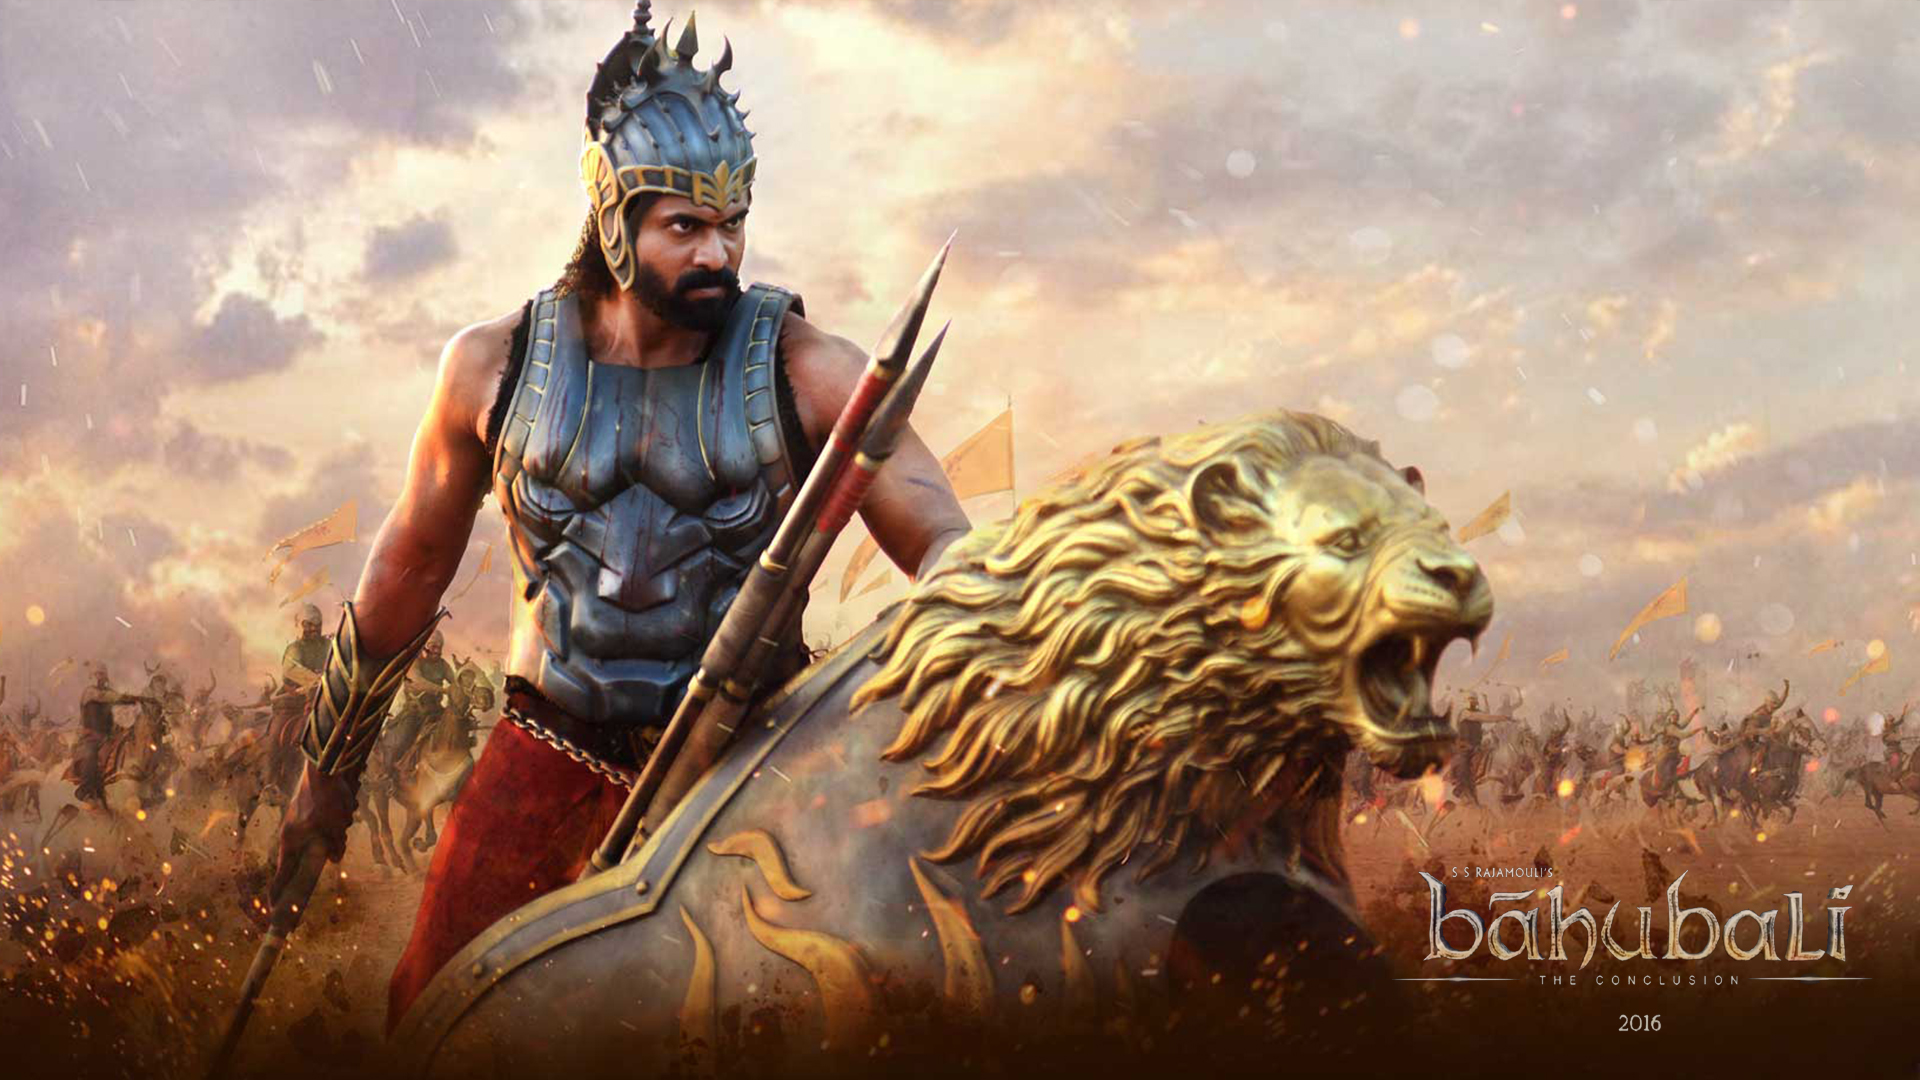 Wallpaper download bahubali 2 - Bahubali 2 Hd Wallpapers